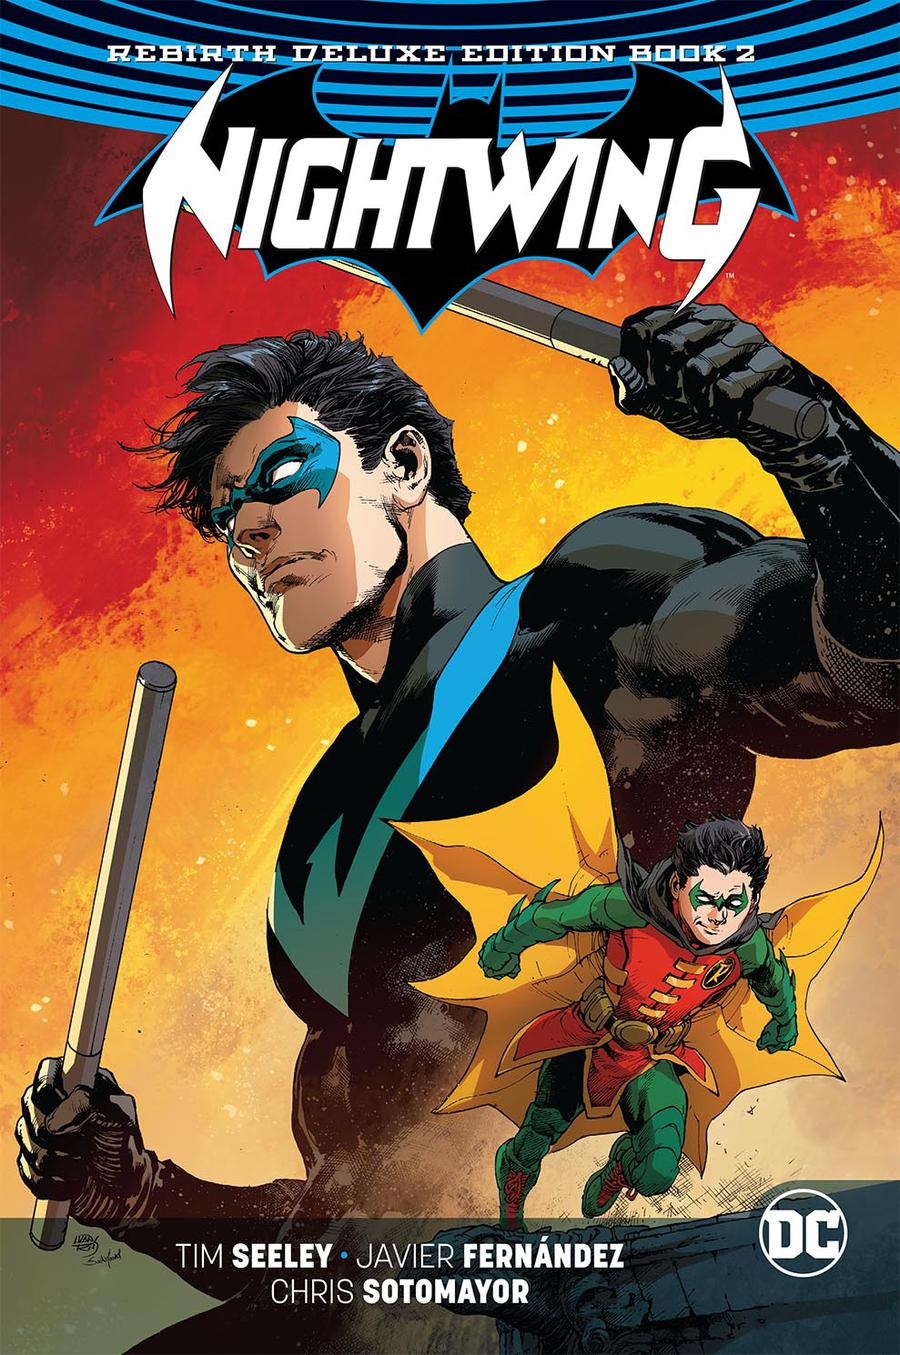 Nightwing Rebirth Deluxe Edition Book 2 HC